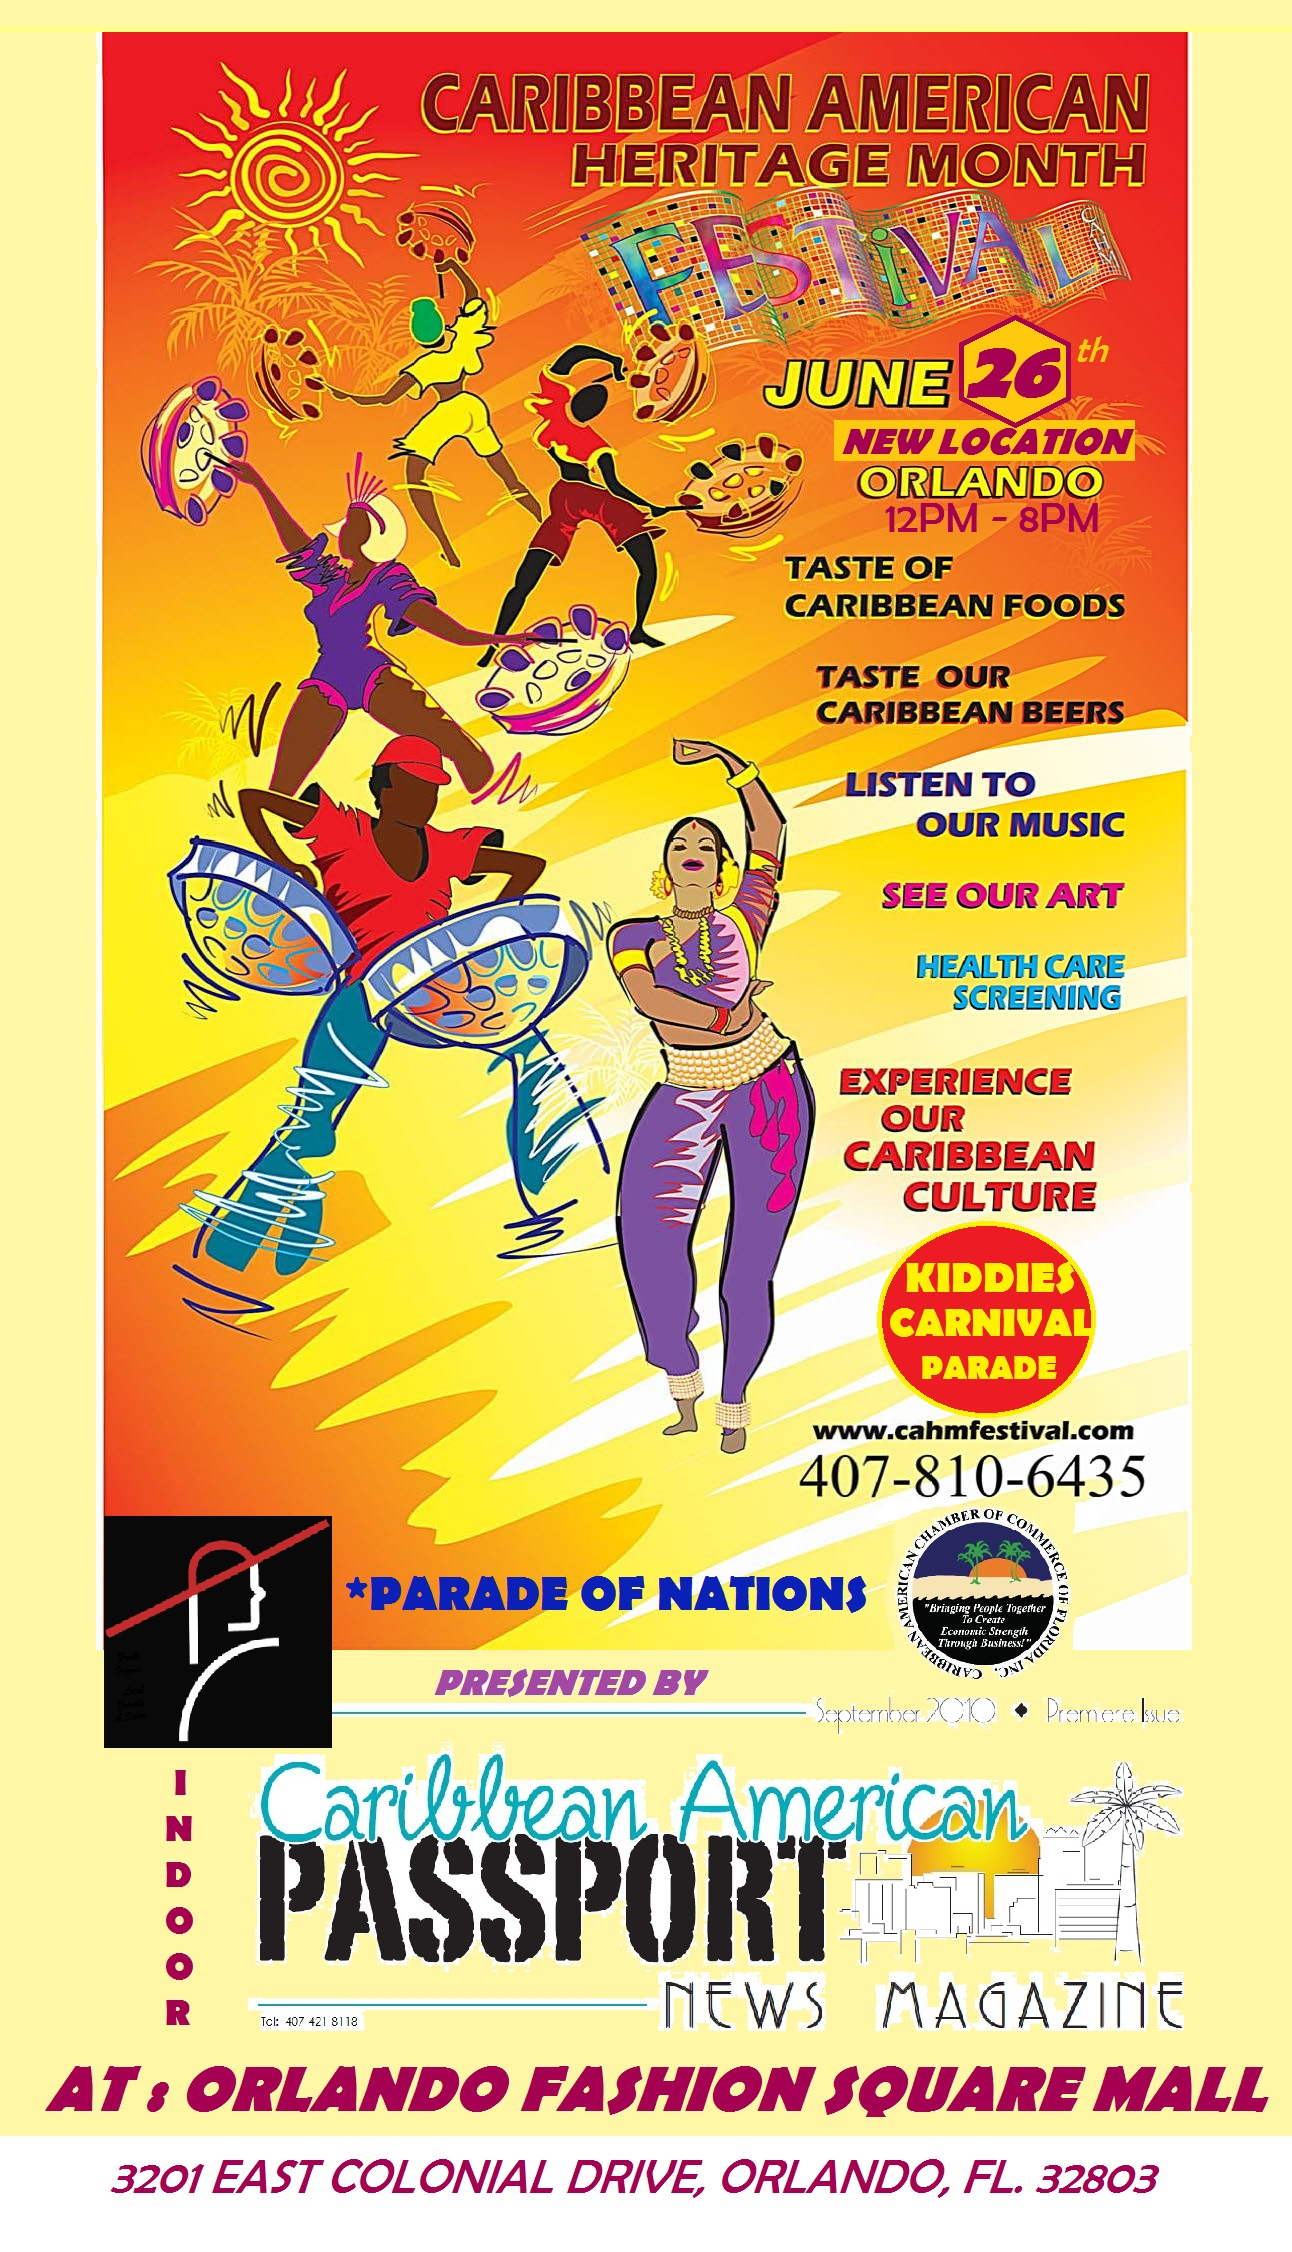 Caribbean American Heritage Month Festival 2016